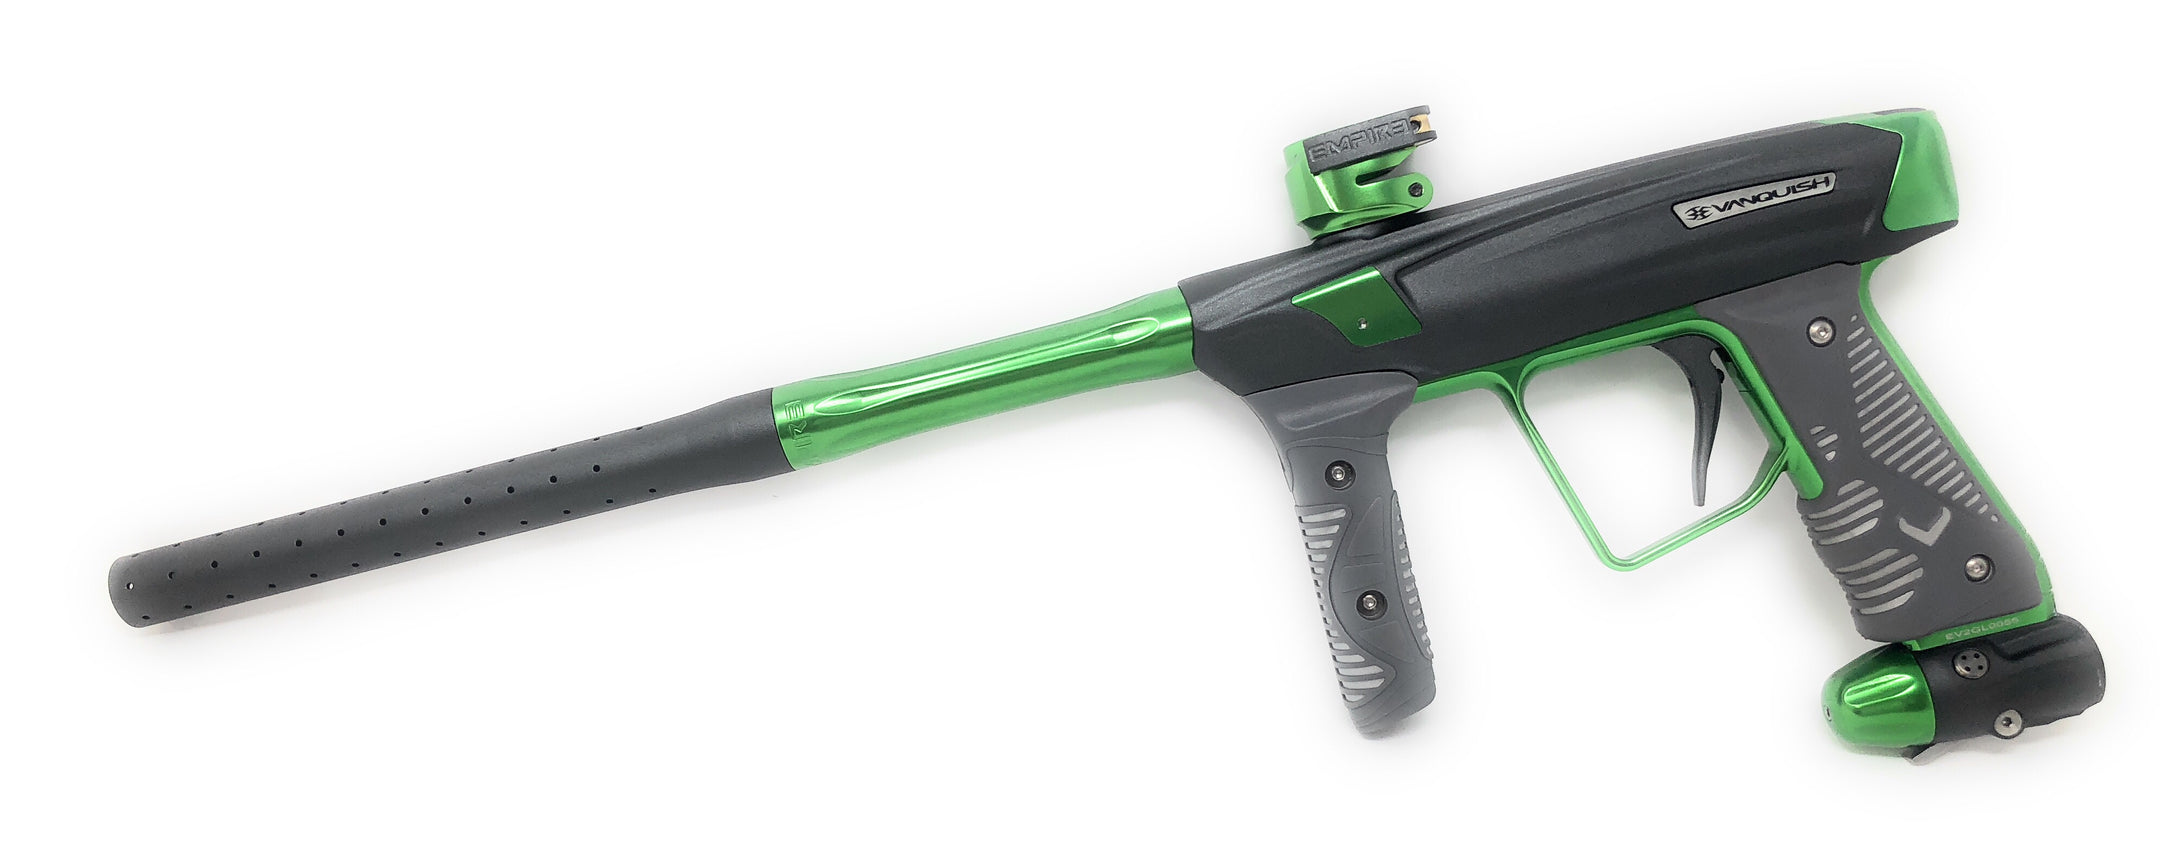 Photos of Empire Vanquish GT Paintball Marker - Lead. Photo taken by drpaintball.com